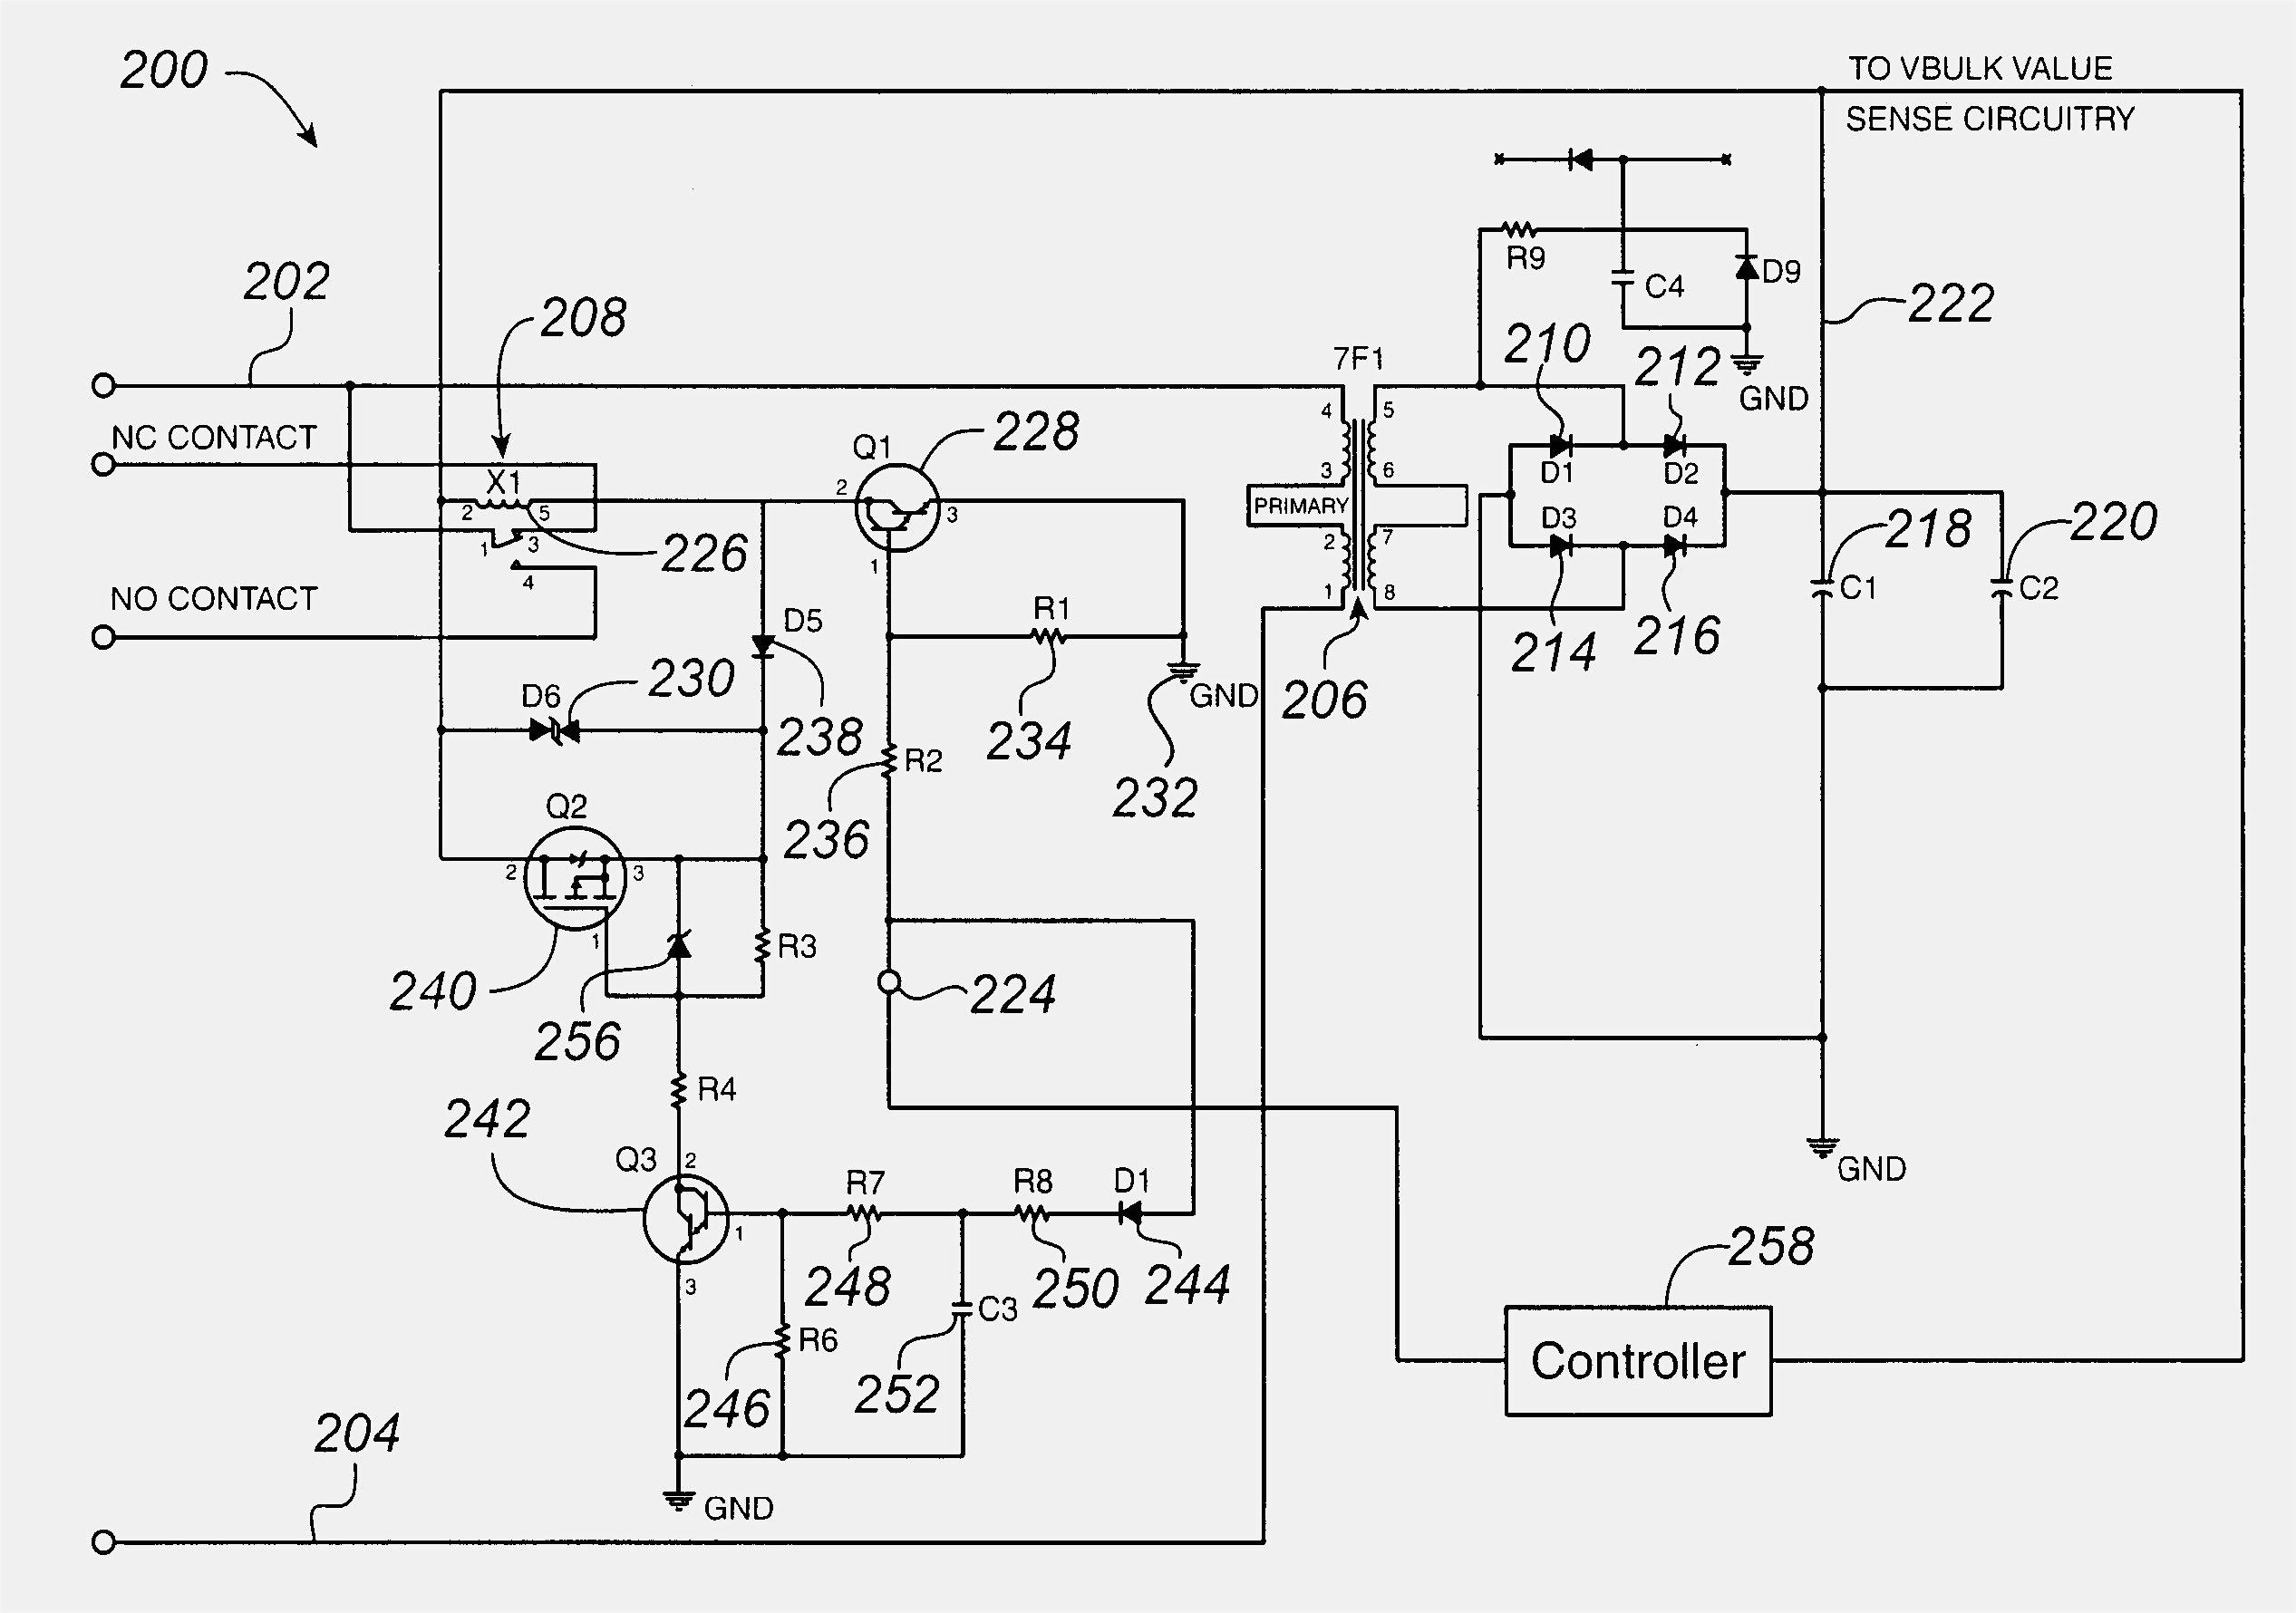 Inspirational True T 23f Wiring Diagram | Walk in freezer, Whirlpool  refrigerator, Diagram | True Twt 27f Wiring Diagram |  | Pinterest